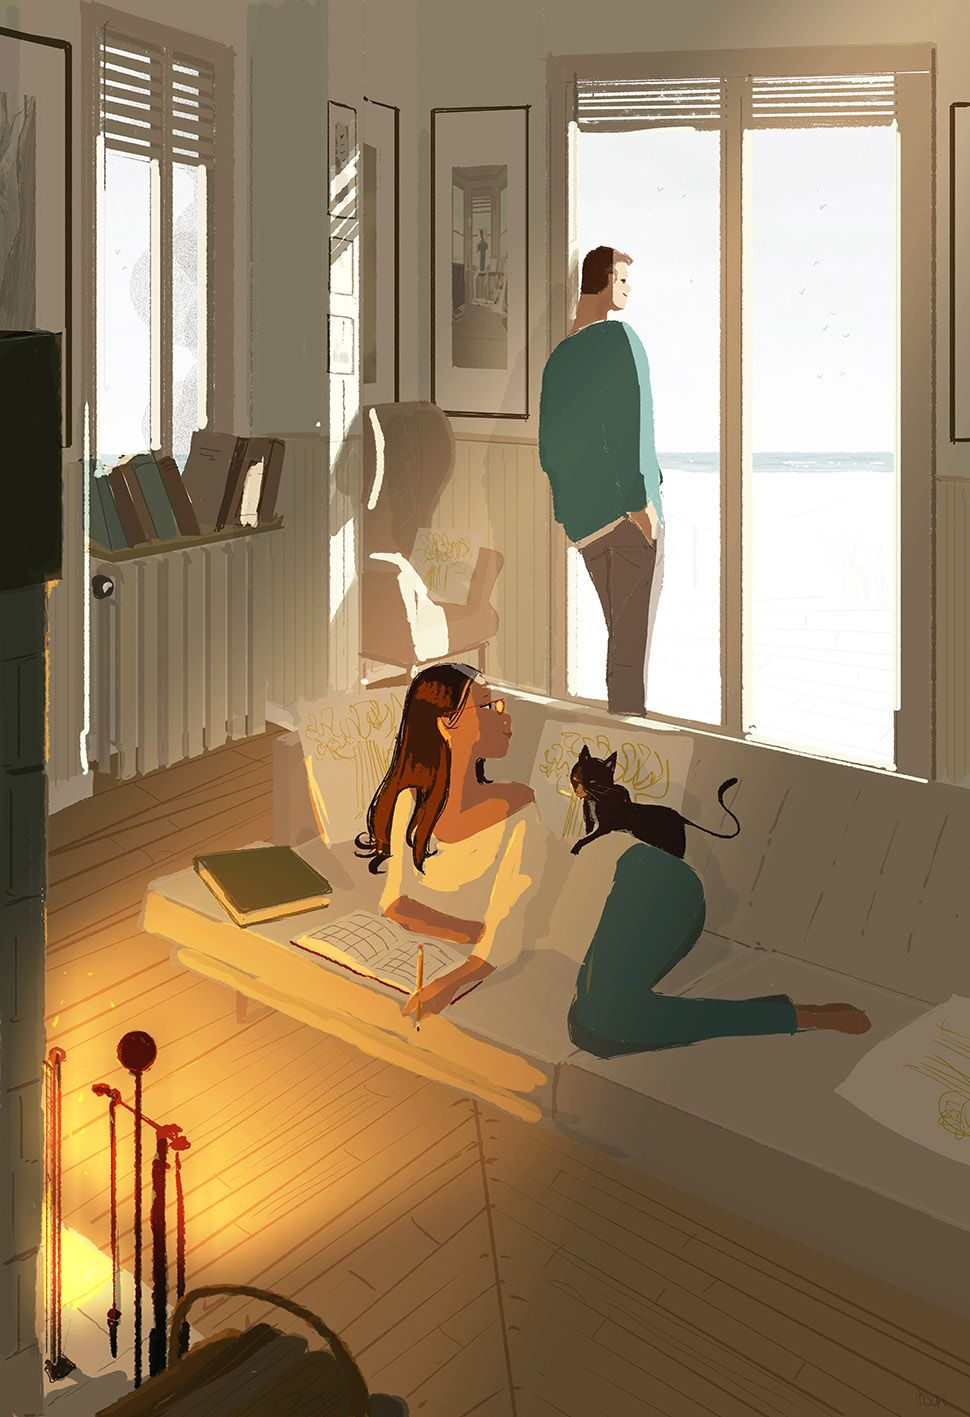 Home by the North Sea by Pascal Campion